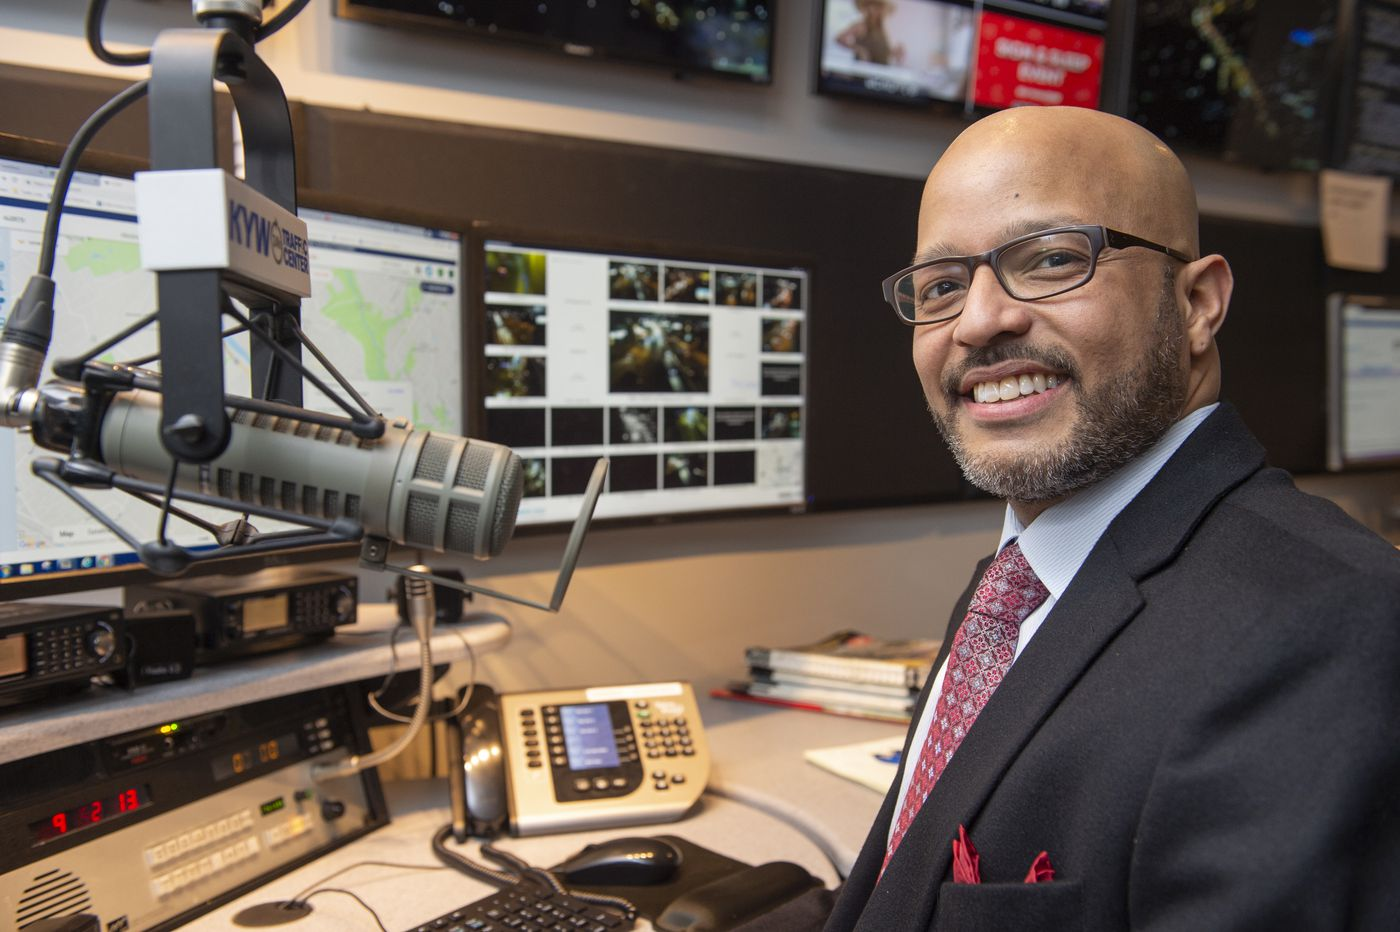 KYW's Malcolm Poindexter III is now following in the footsteps of his famous father